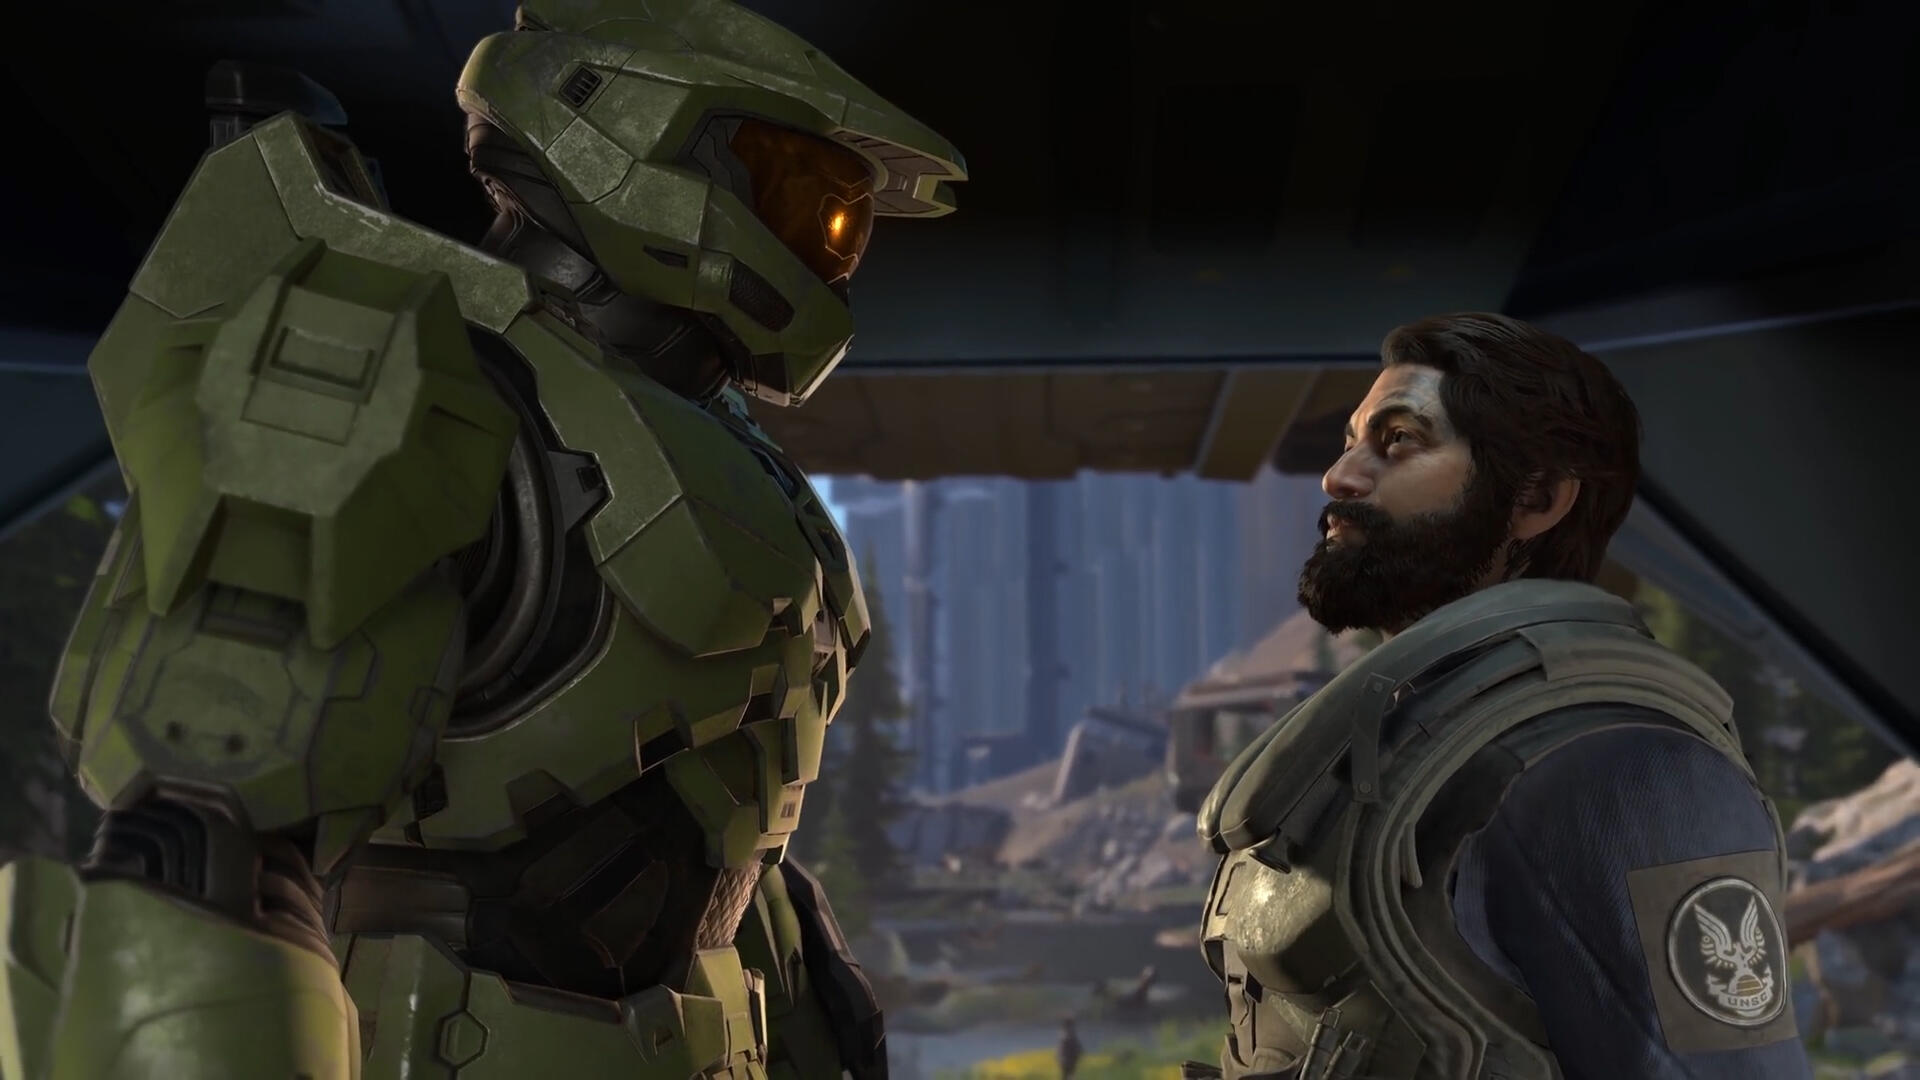 Video: Microsoft debuts Halo Infinite gameplay